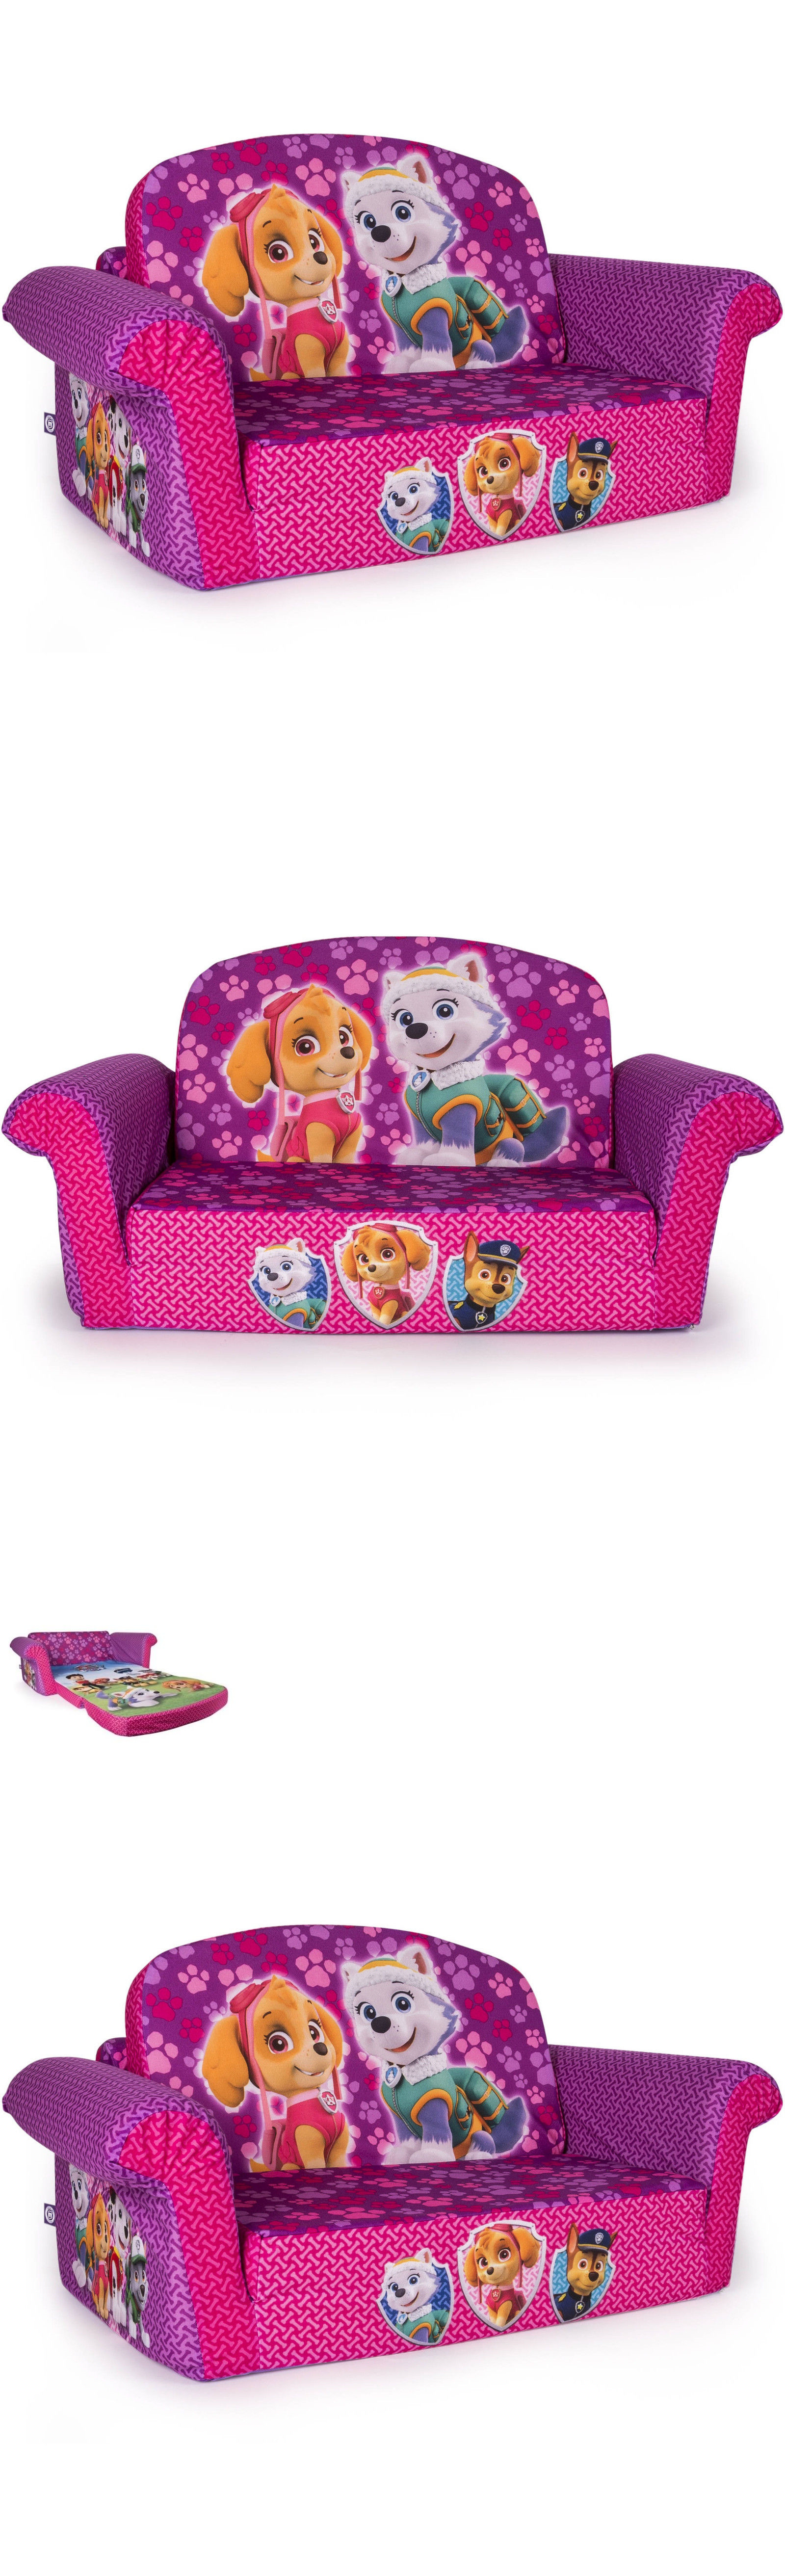 Sofas And Armchairs 134648 Paw Patrol Convertible Sofa Bed Couch